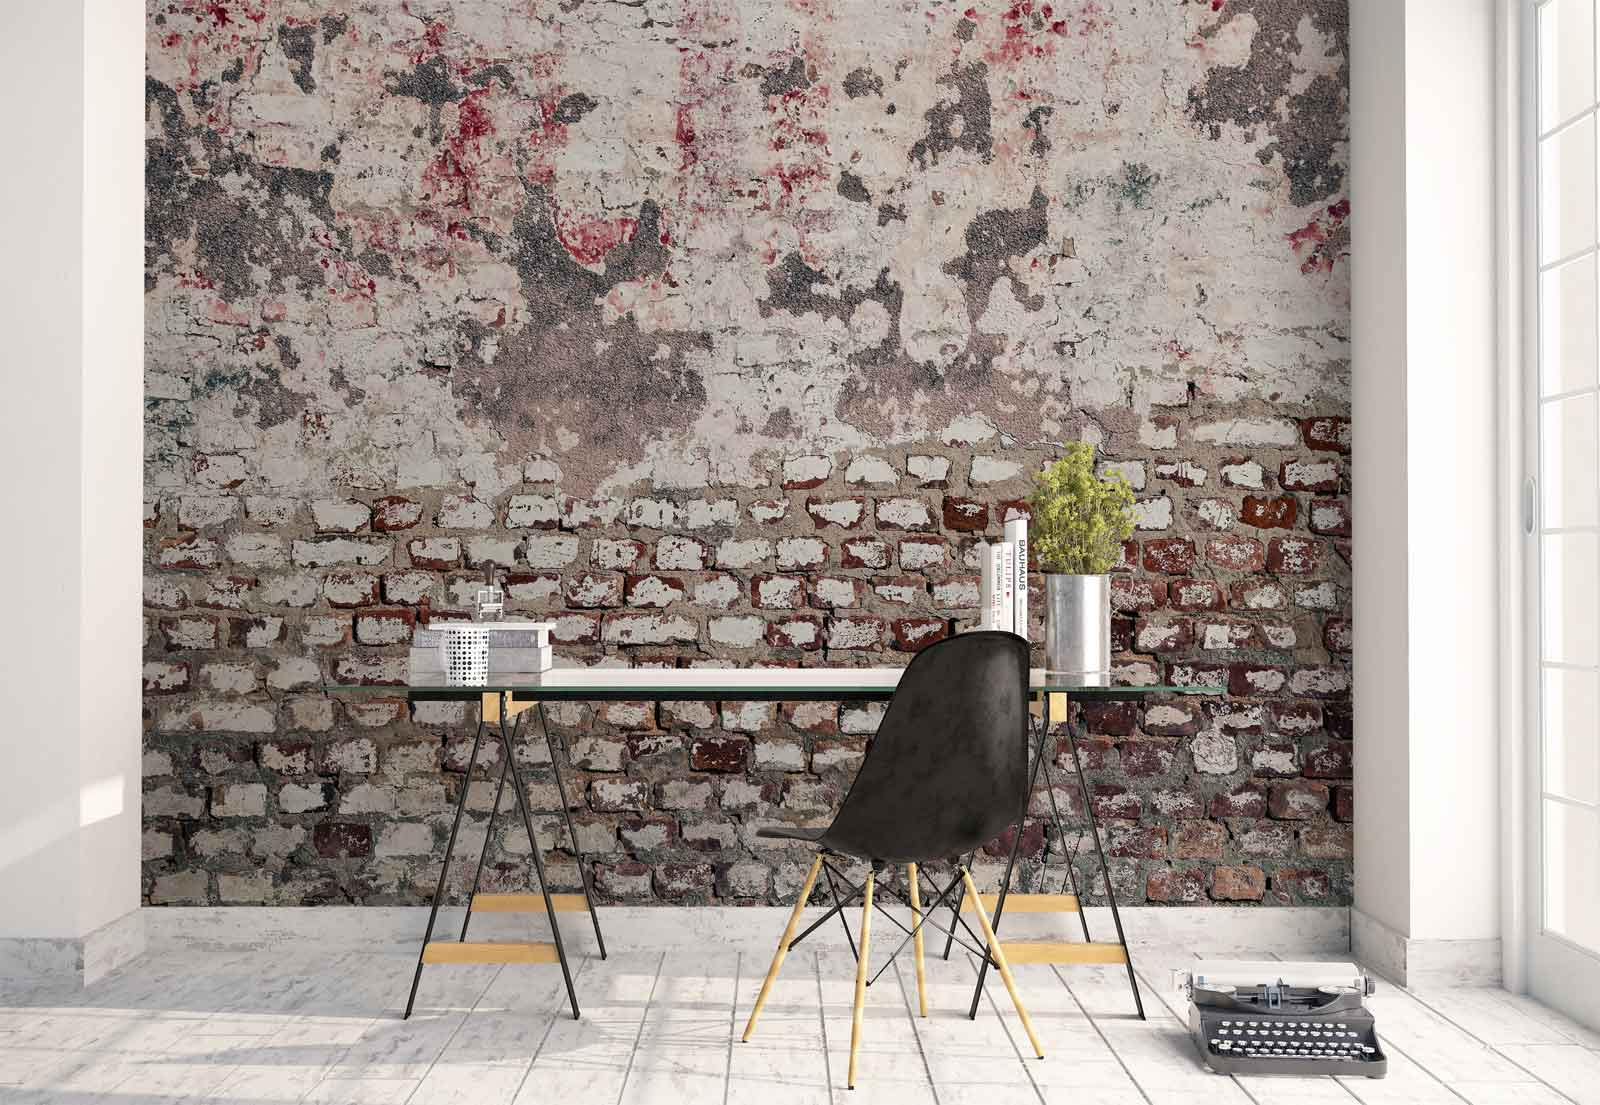 Grunge brick wall texture photo wallpaper wall mural fw for Brick wall mural